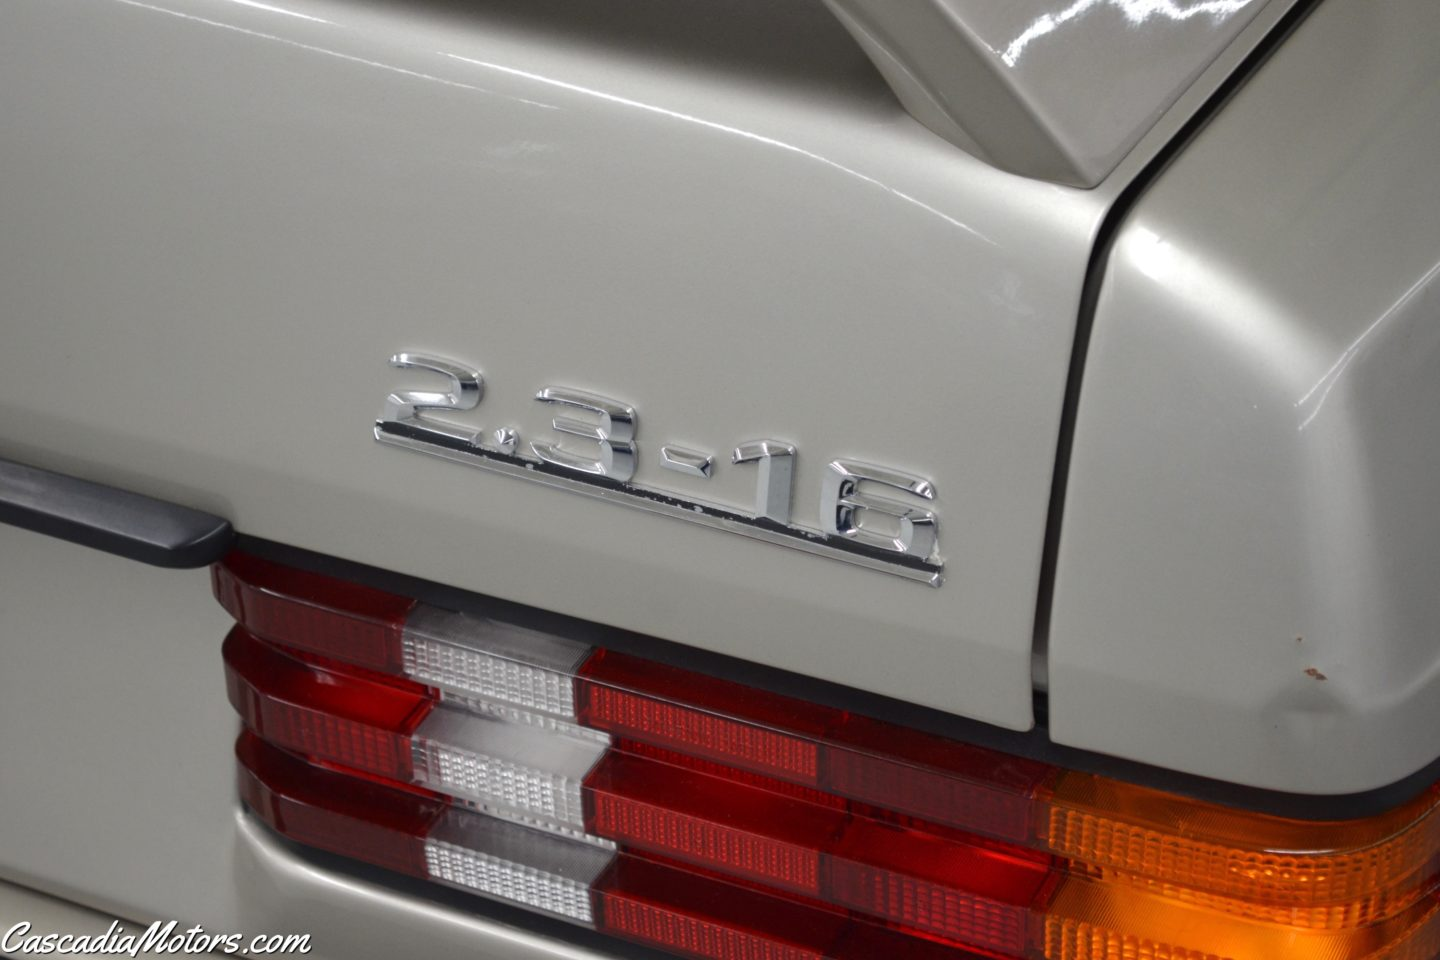 Mercedes-Benz 190 E 2.3-16 Cosworth